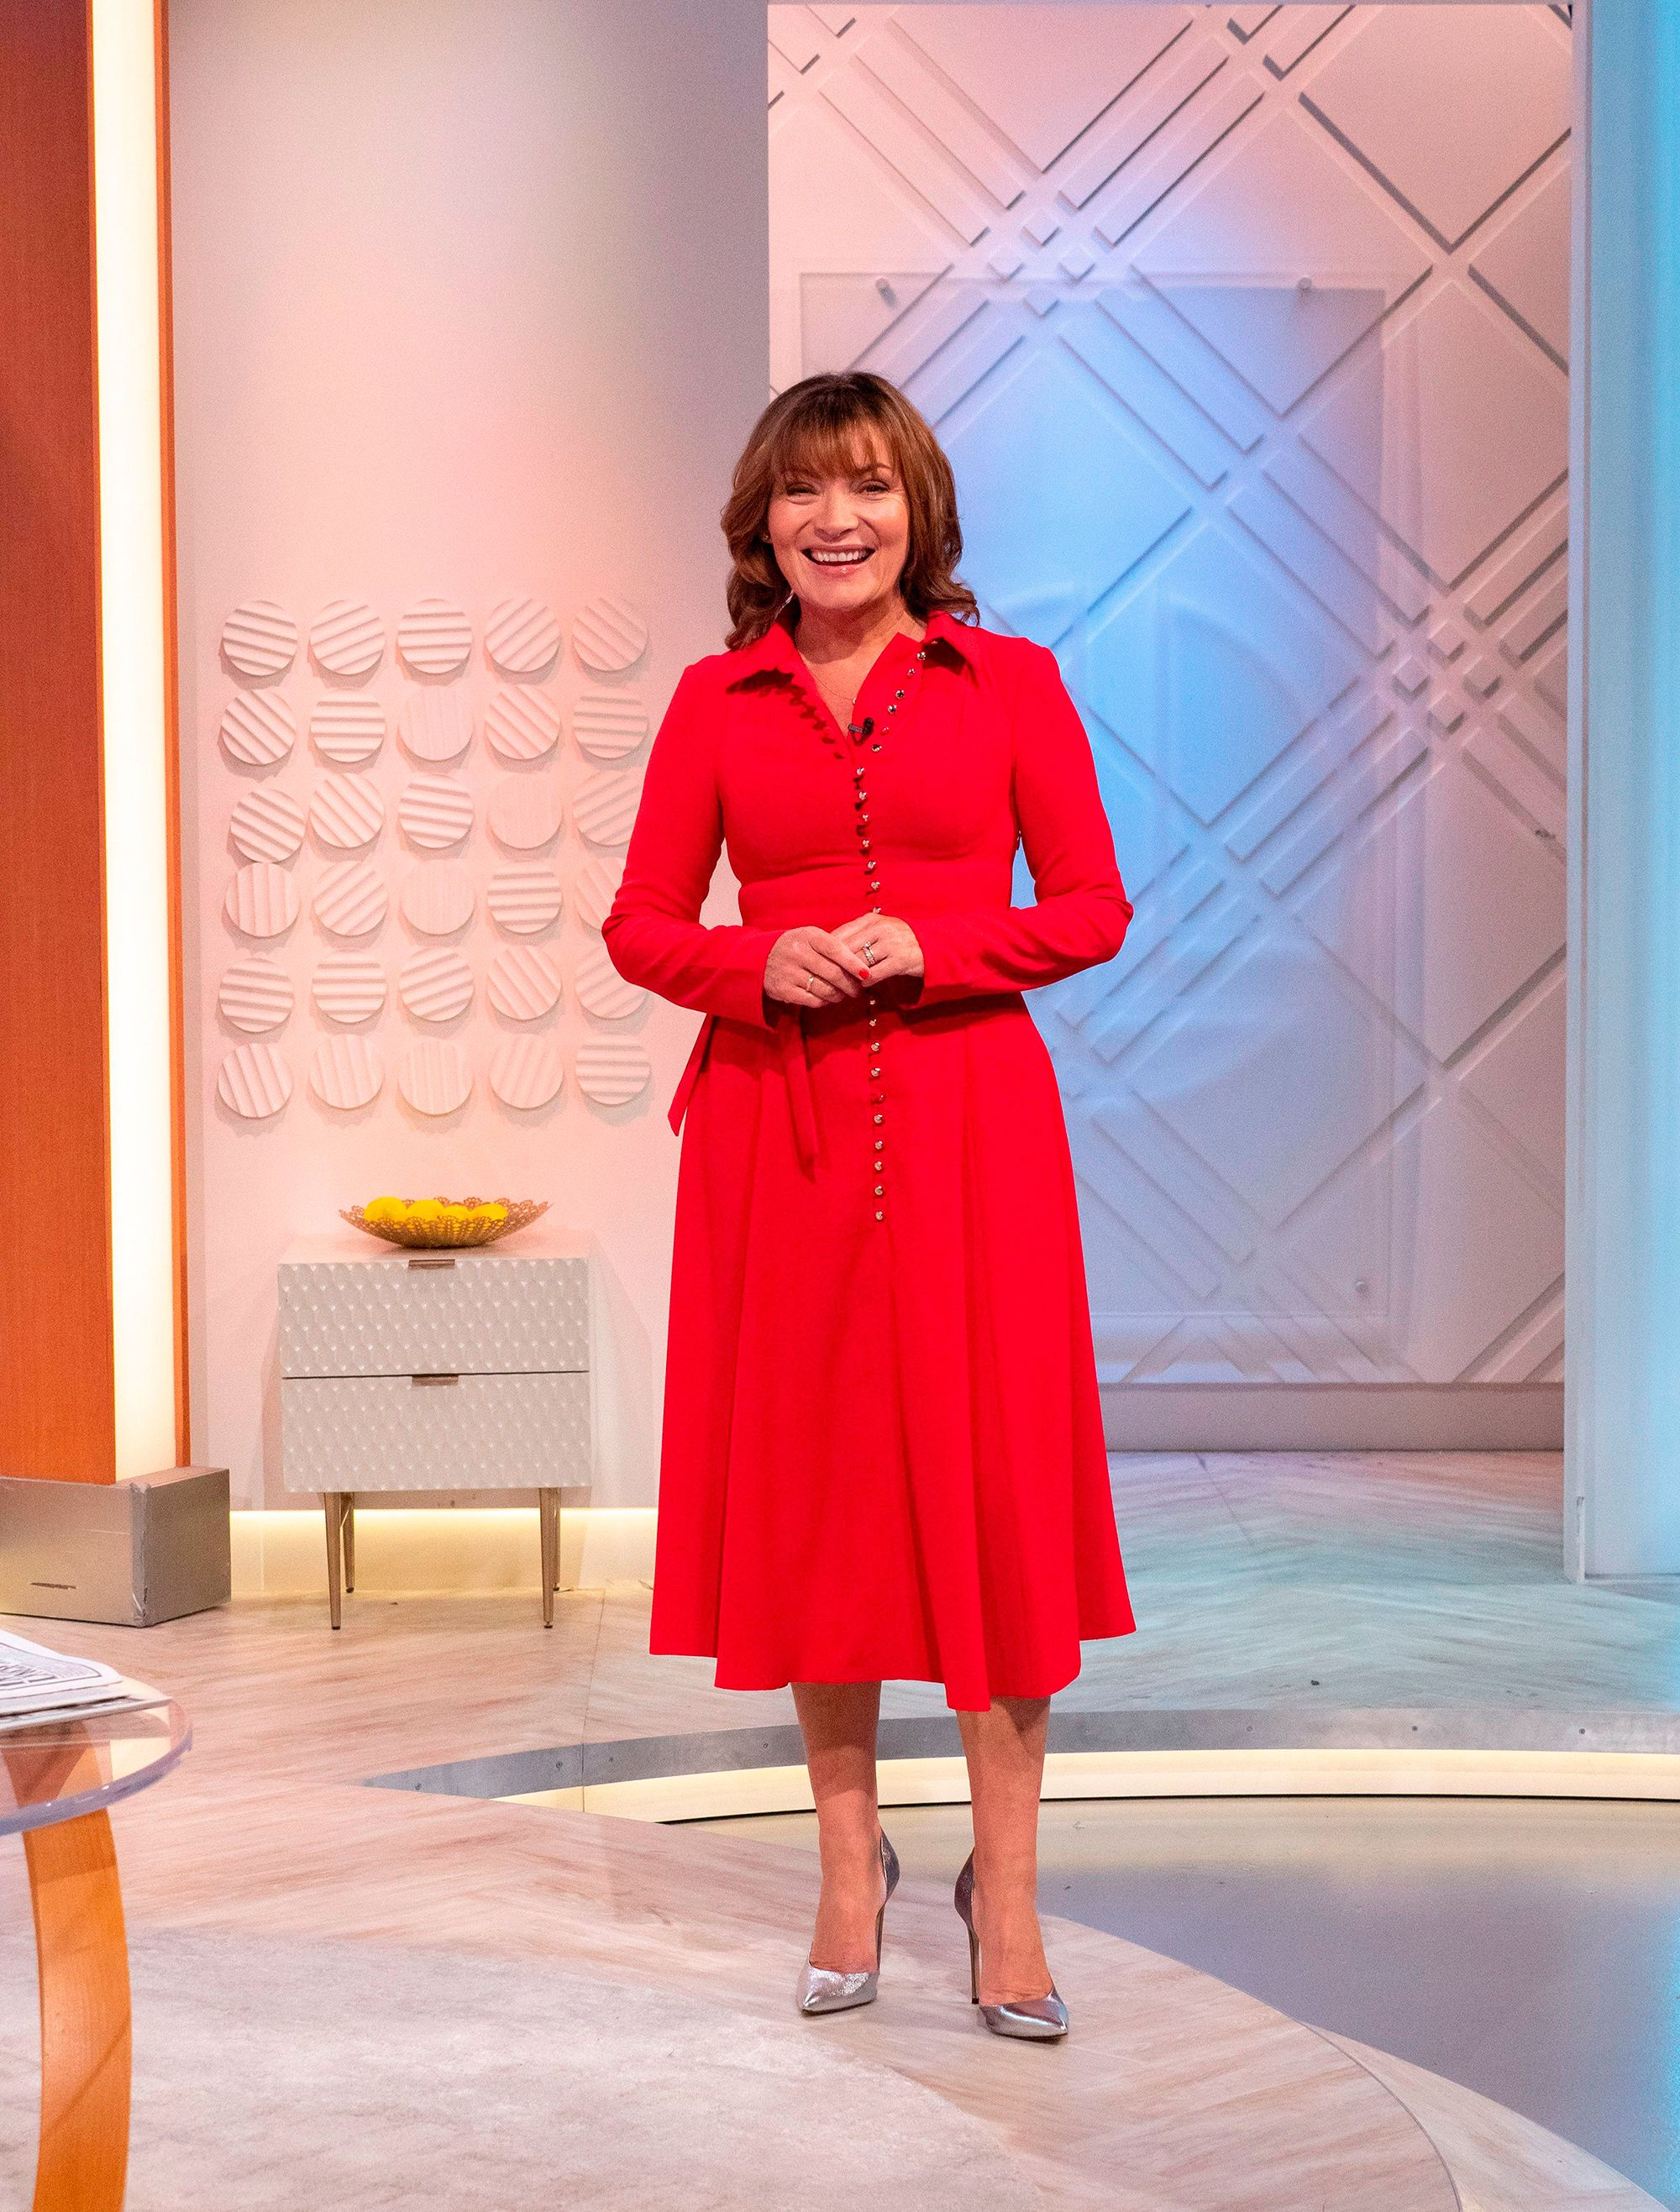 Where to buy Lorraine Kelly red dress